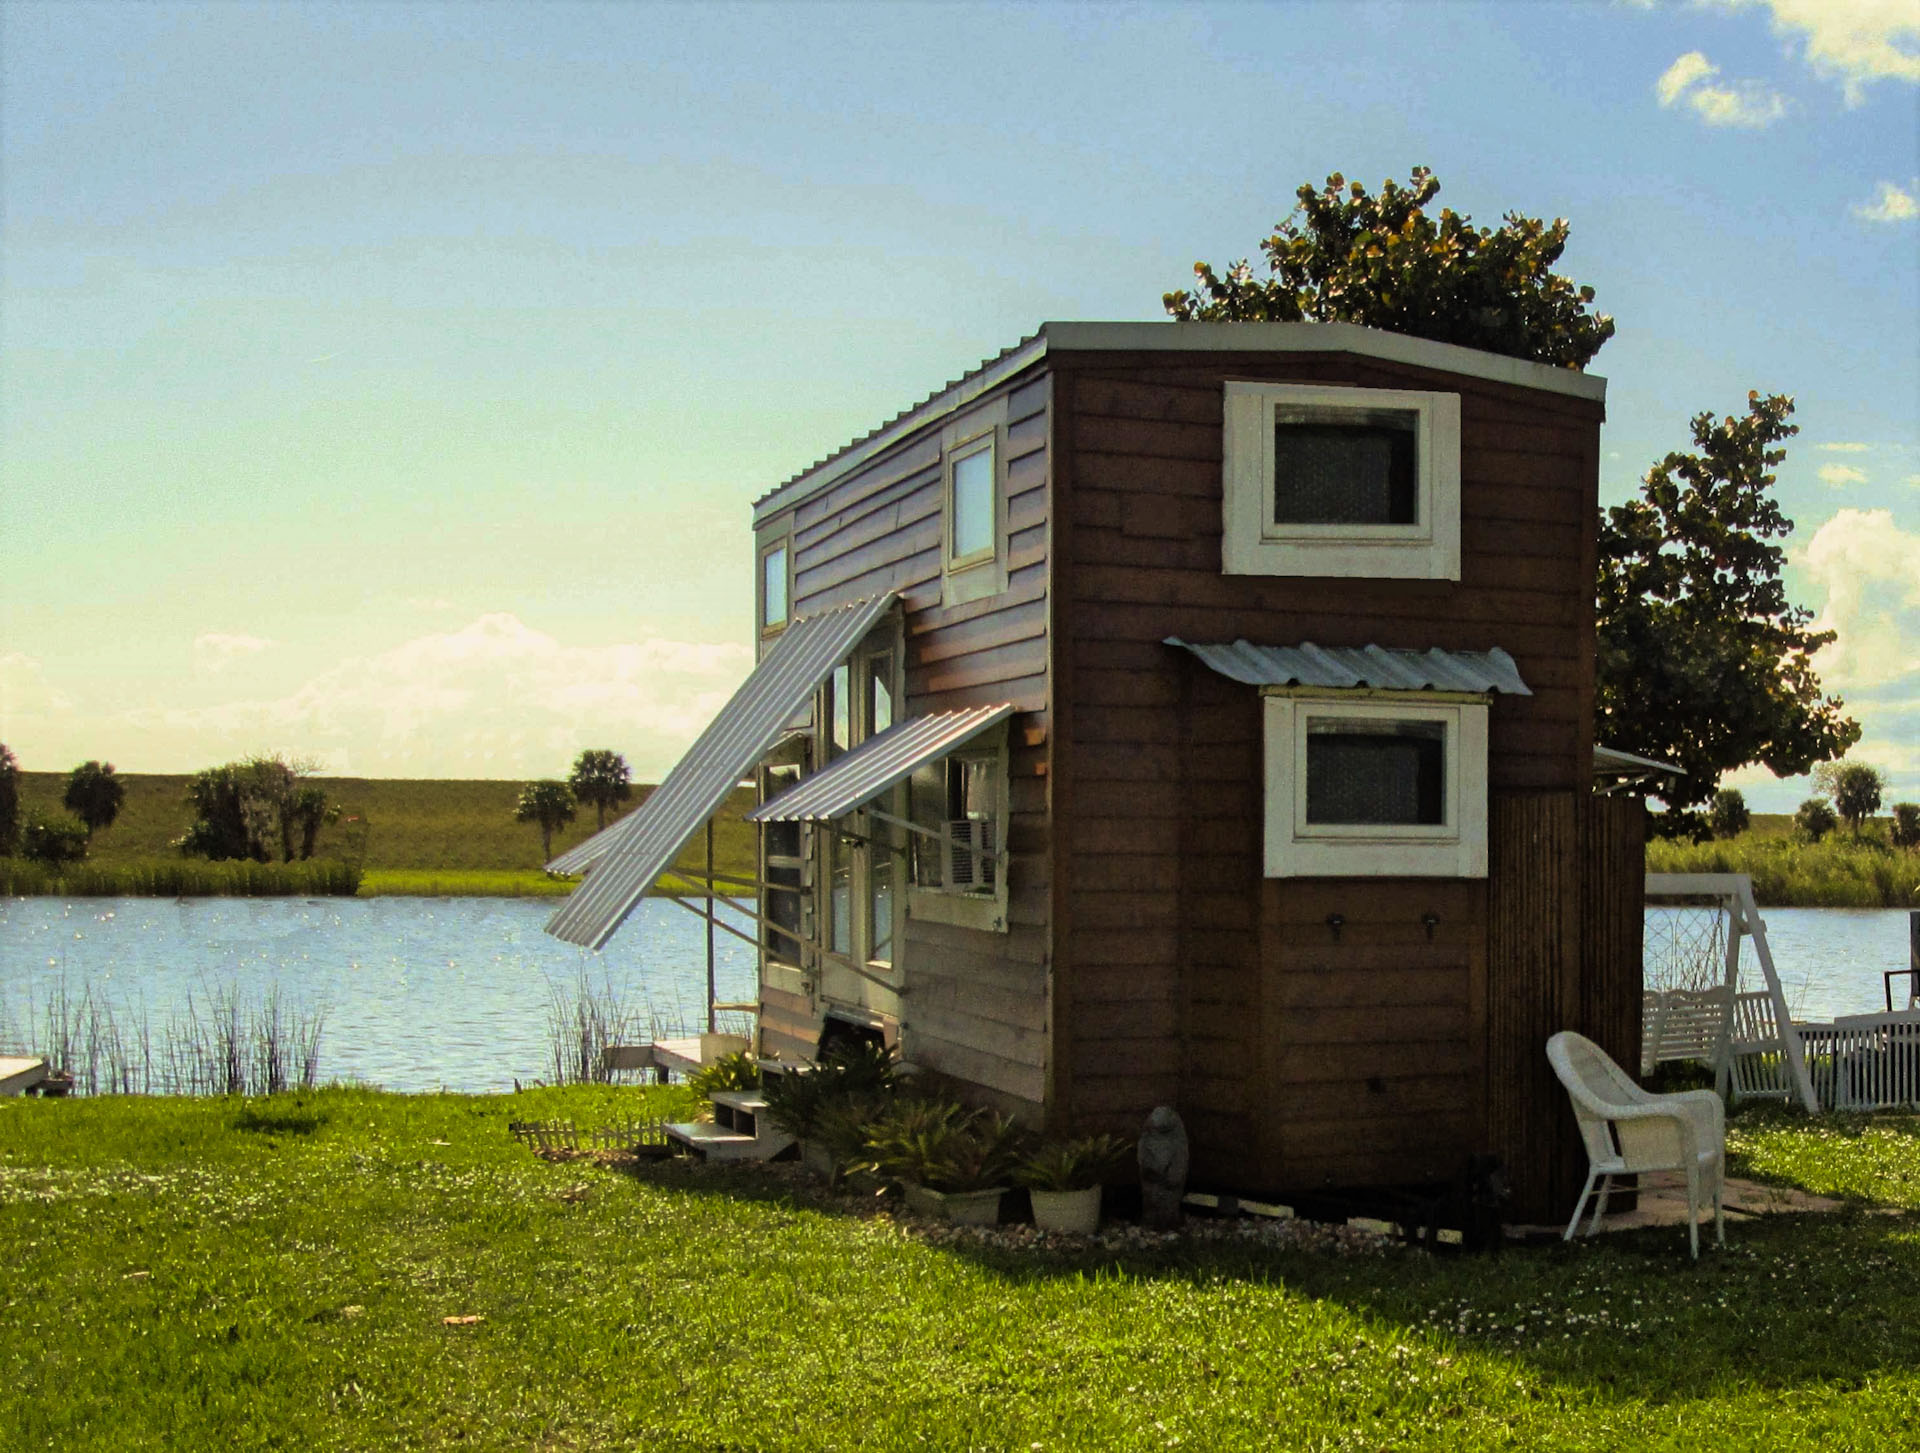 DIY Tiny House at a lakeside site